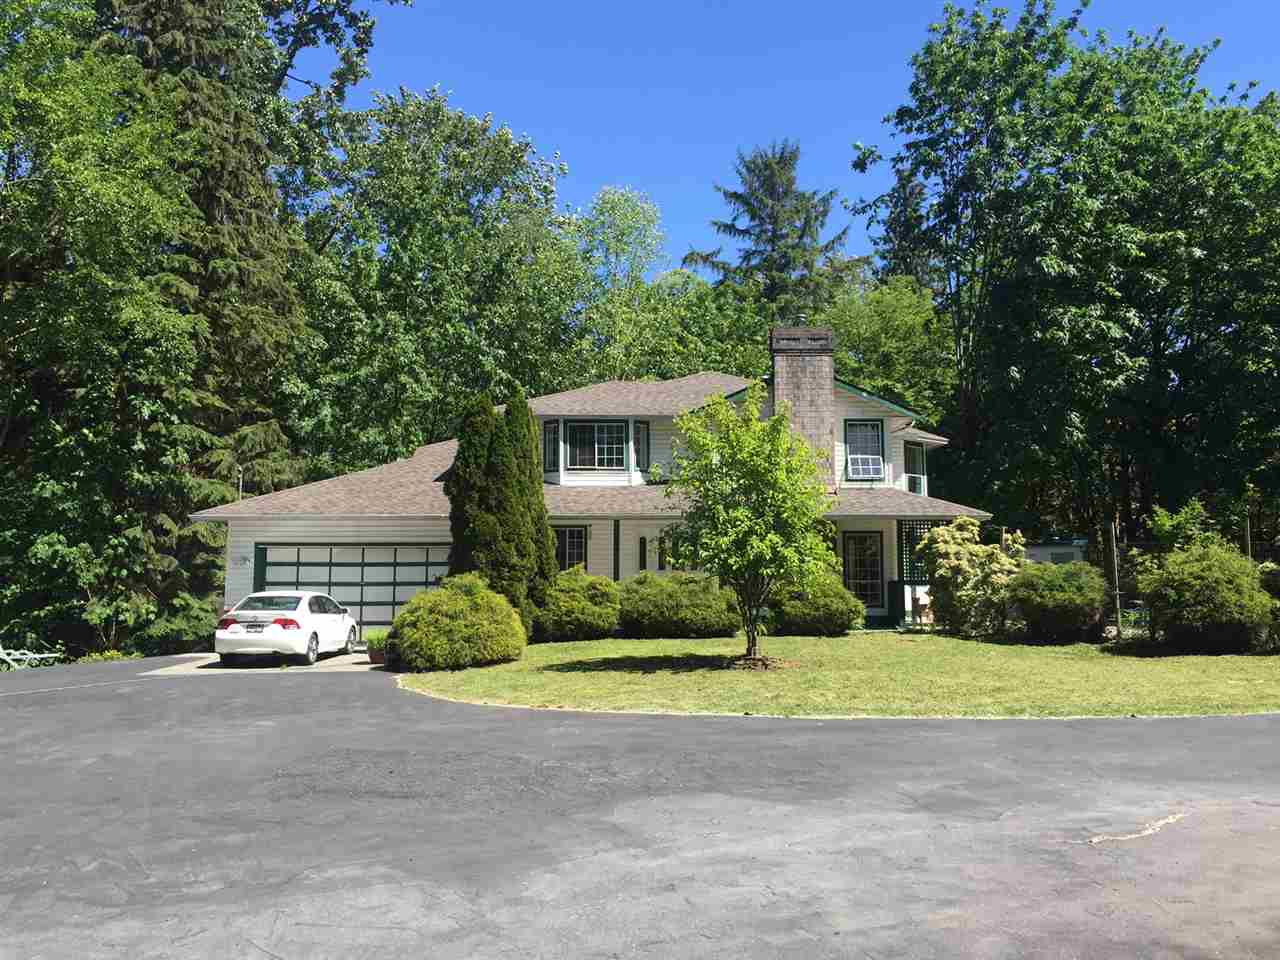 3,600 SF house on Gorgeous Park-like setting Private 4.74 acres of land, surrounded by mature trees & Big Salmon spawning creek runs through the property. Great future potential, located within Jericho & Latimer Land Use Plan. Front section designated as Jericho - Townhouses & back portion of Land designated as Latimer - Single Family Residential 3 (6-8upa). Property offers 2 storey/w BSMT home, built in 1990, insulated detached workshop, pool, picture windows and total privacy. City water & sewer on 80 Ave. Walk through outside only on first showing. The house is as-is-where-is condition. Truly Private Oasis in central location!